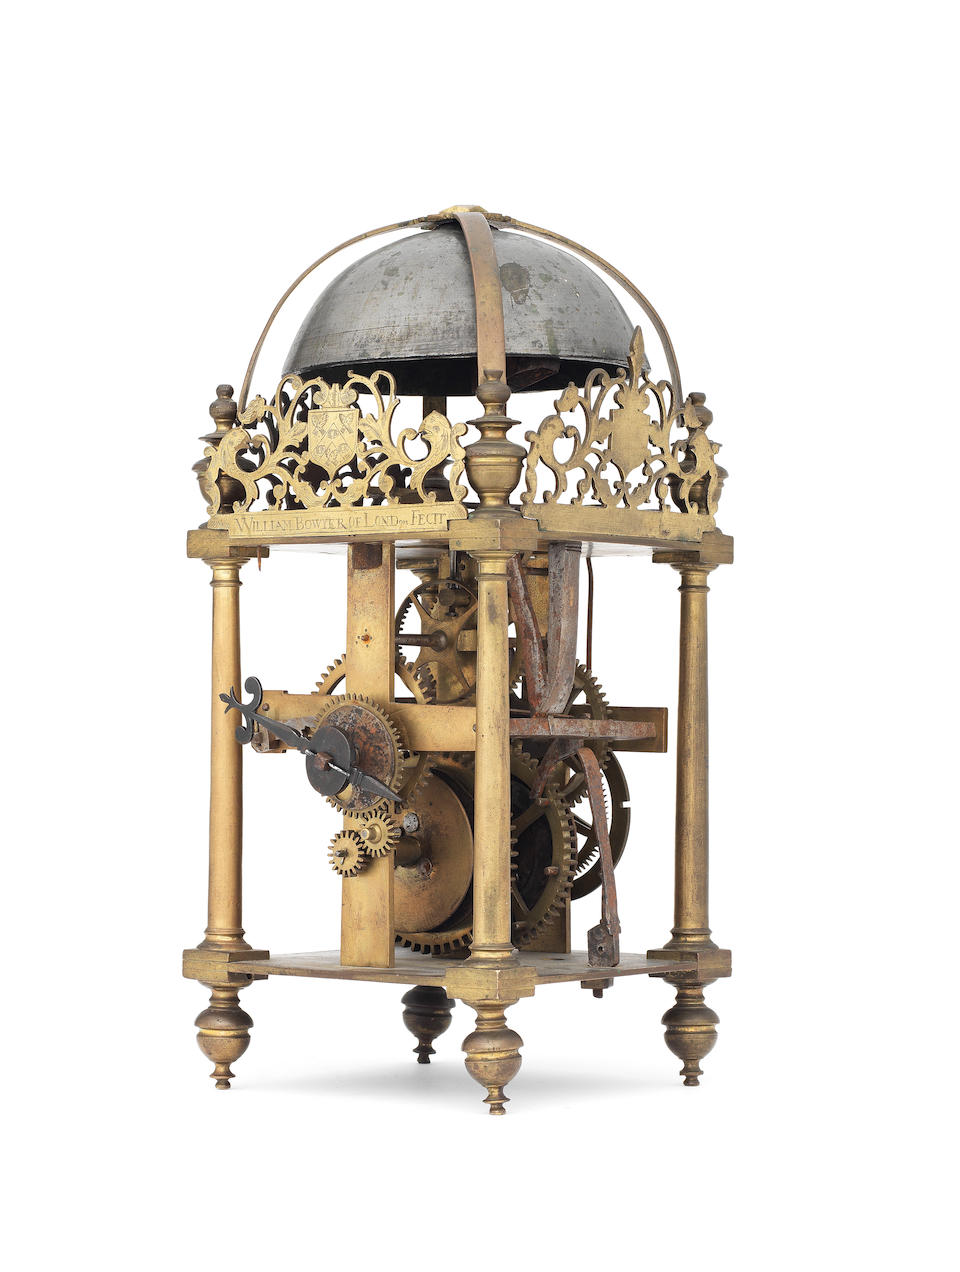 A unique and important dated 17th century lantern clock of large size, engraved with the arms of The Brewers Company William Bowyer, London, dated 1632.  The bell cast with the initials 'KS'